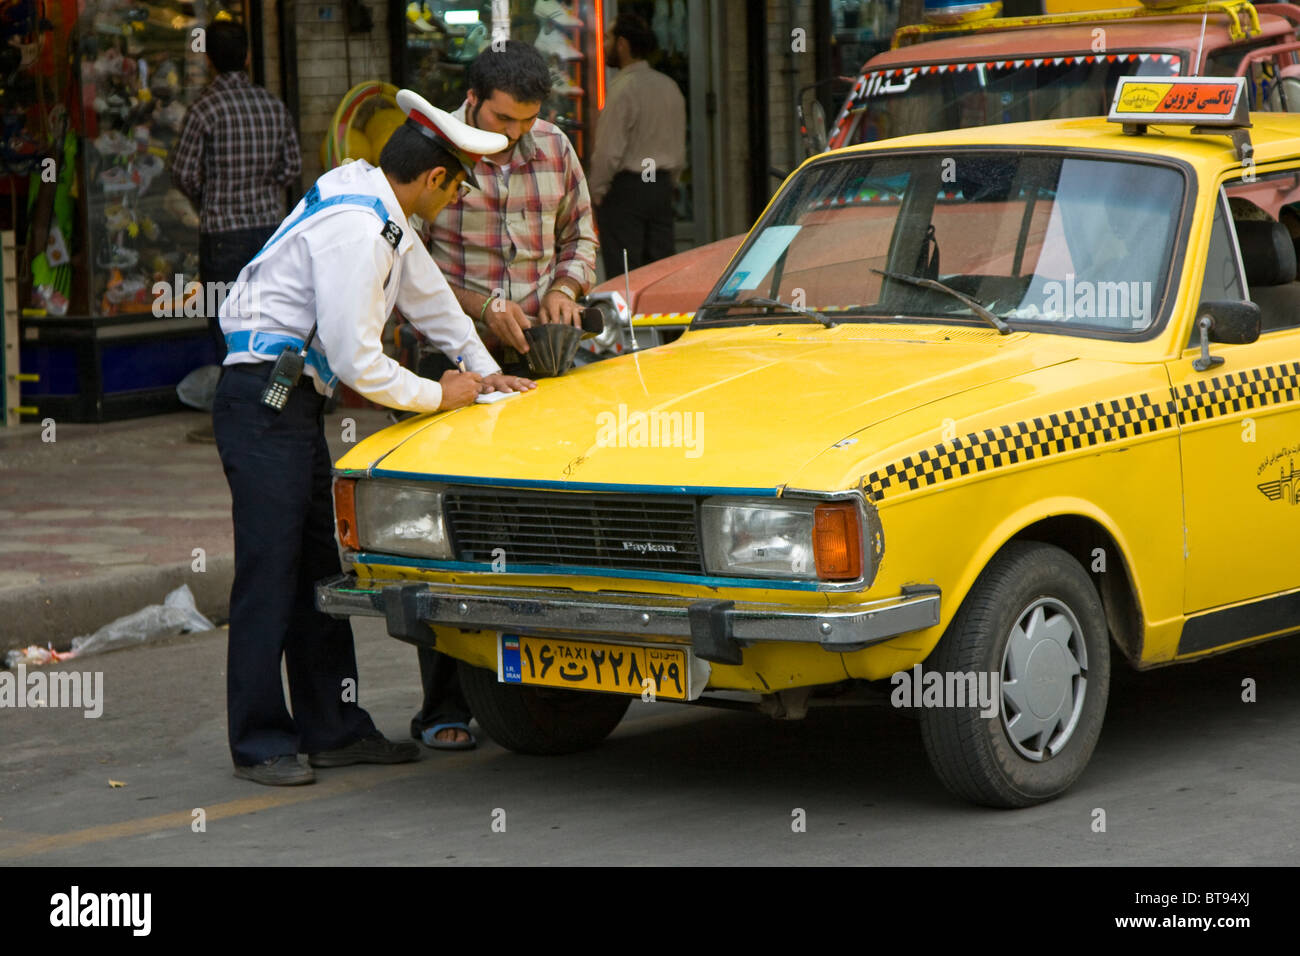 Policeman Issueing a Ticket to a Taxicab in Qazvin Iran - Stock Image